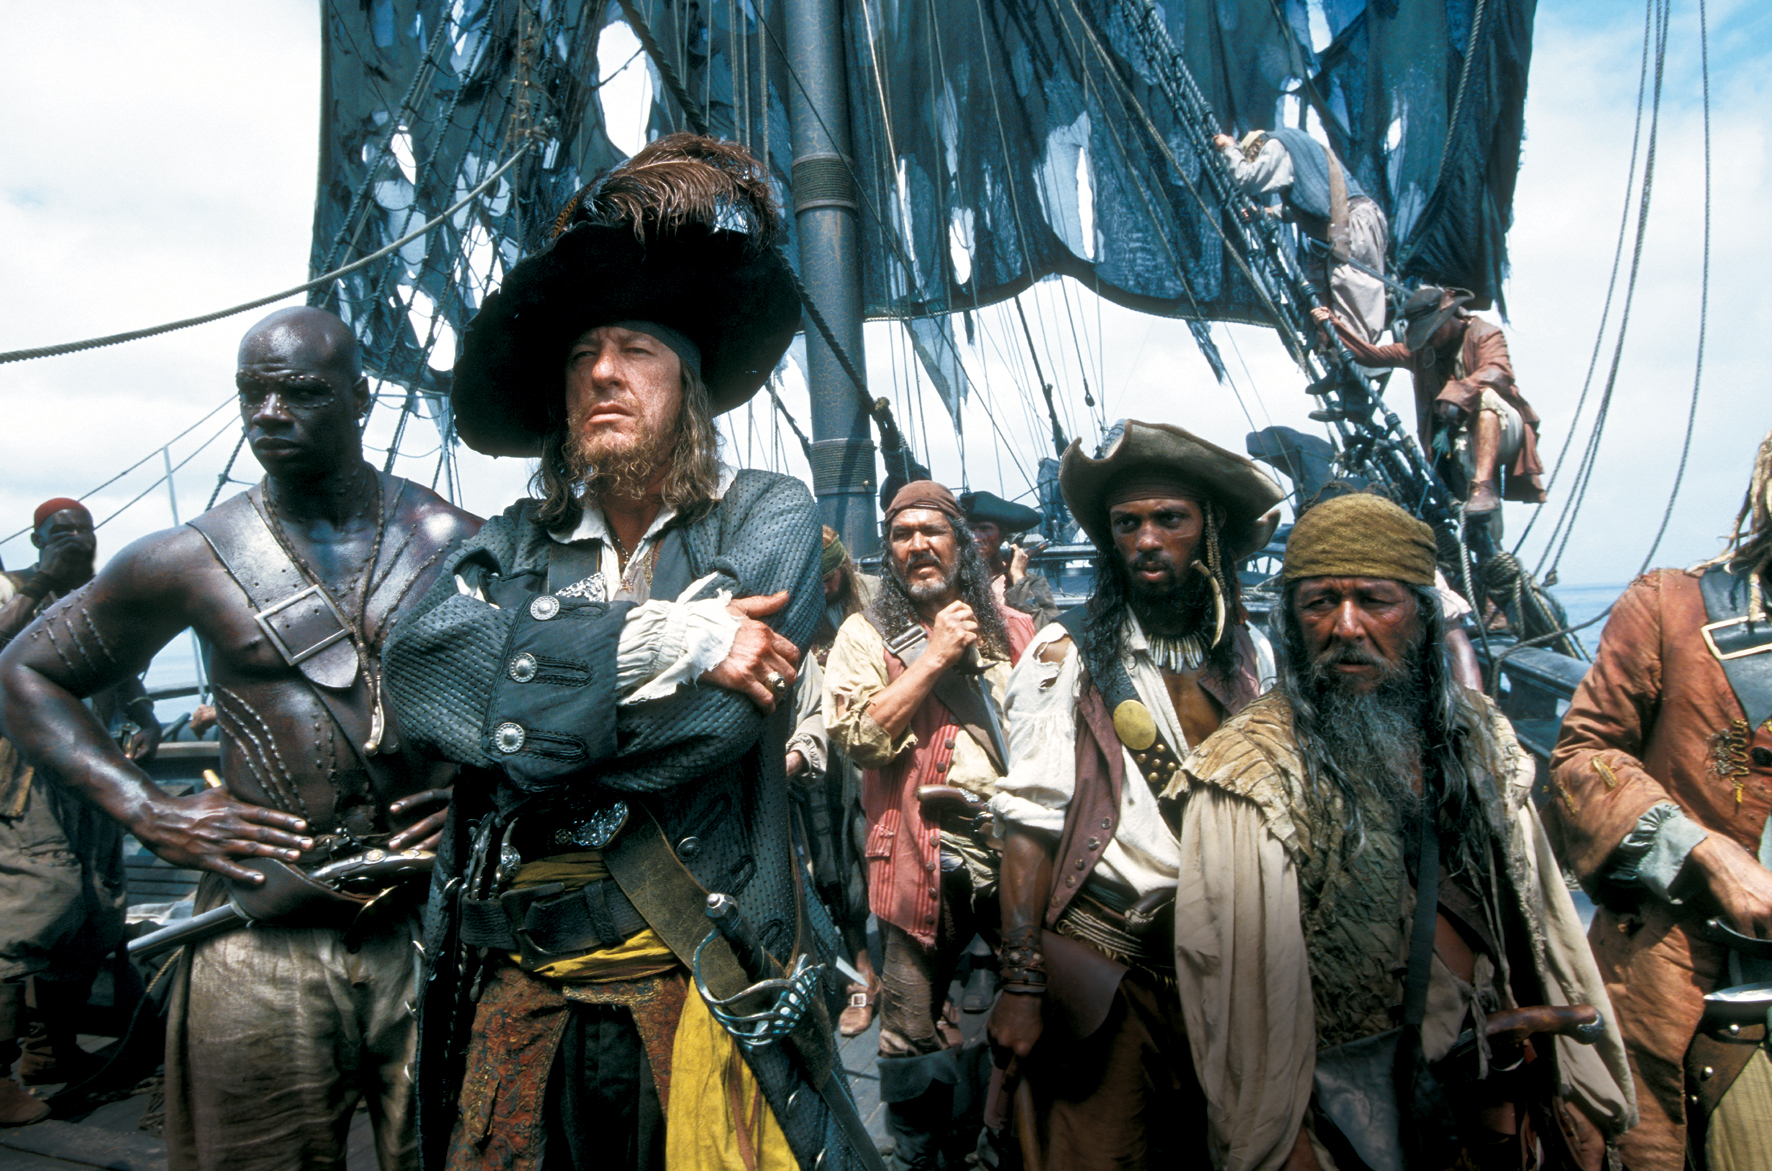 Pirates Of The Caribbean-The Curse Of The Black Pearl [2003] – Trailer Stills & Info